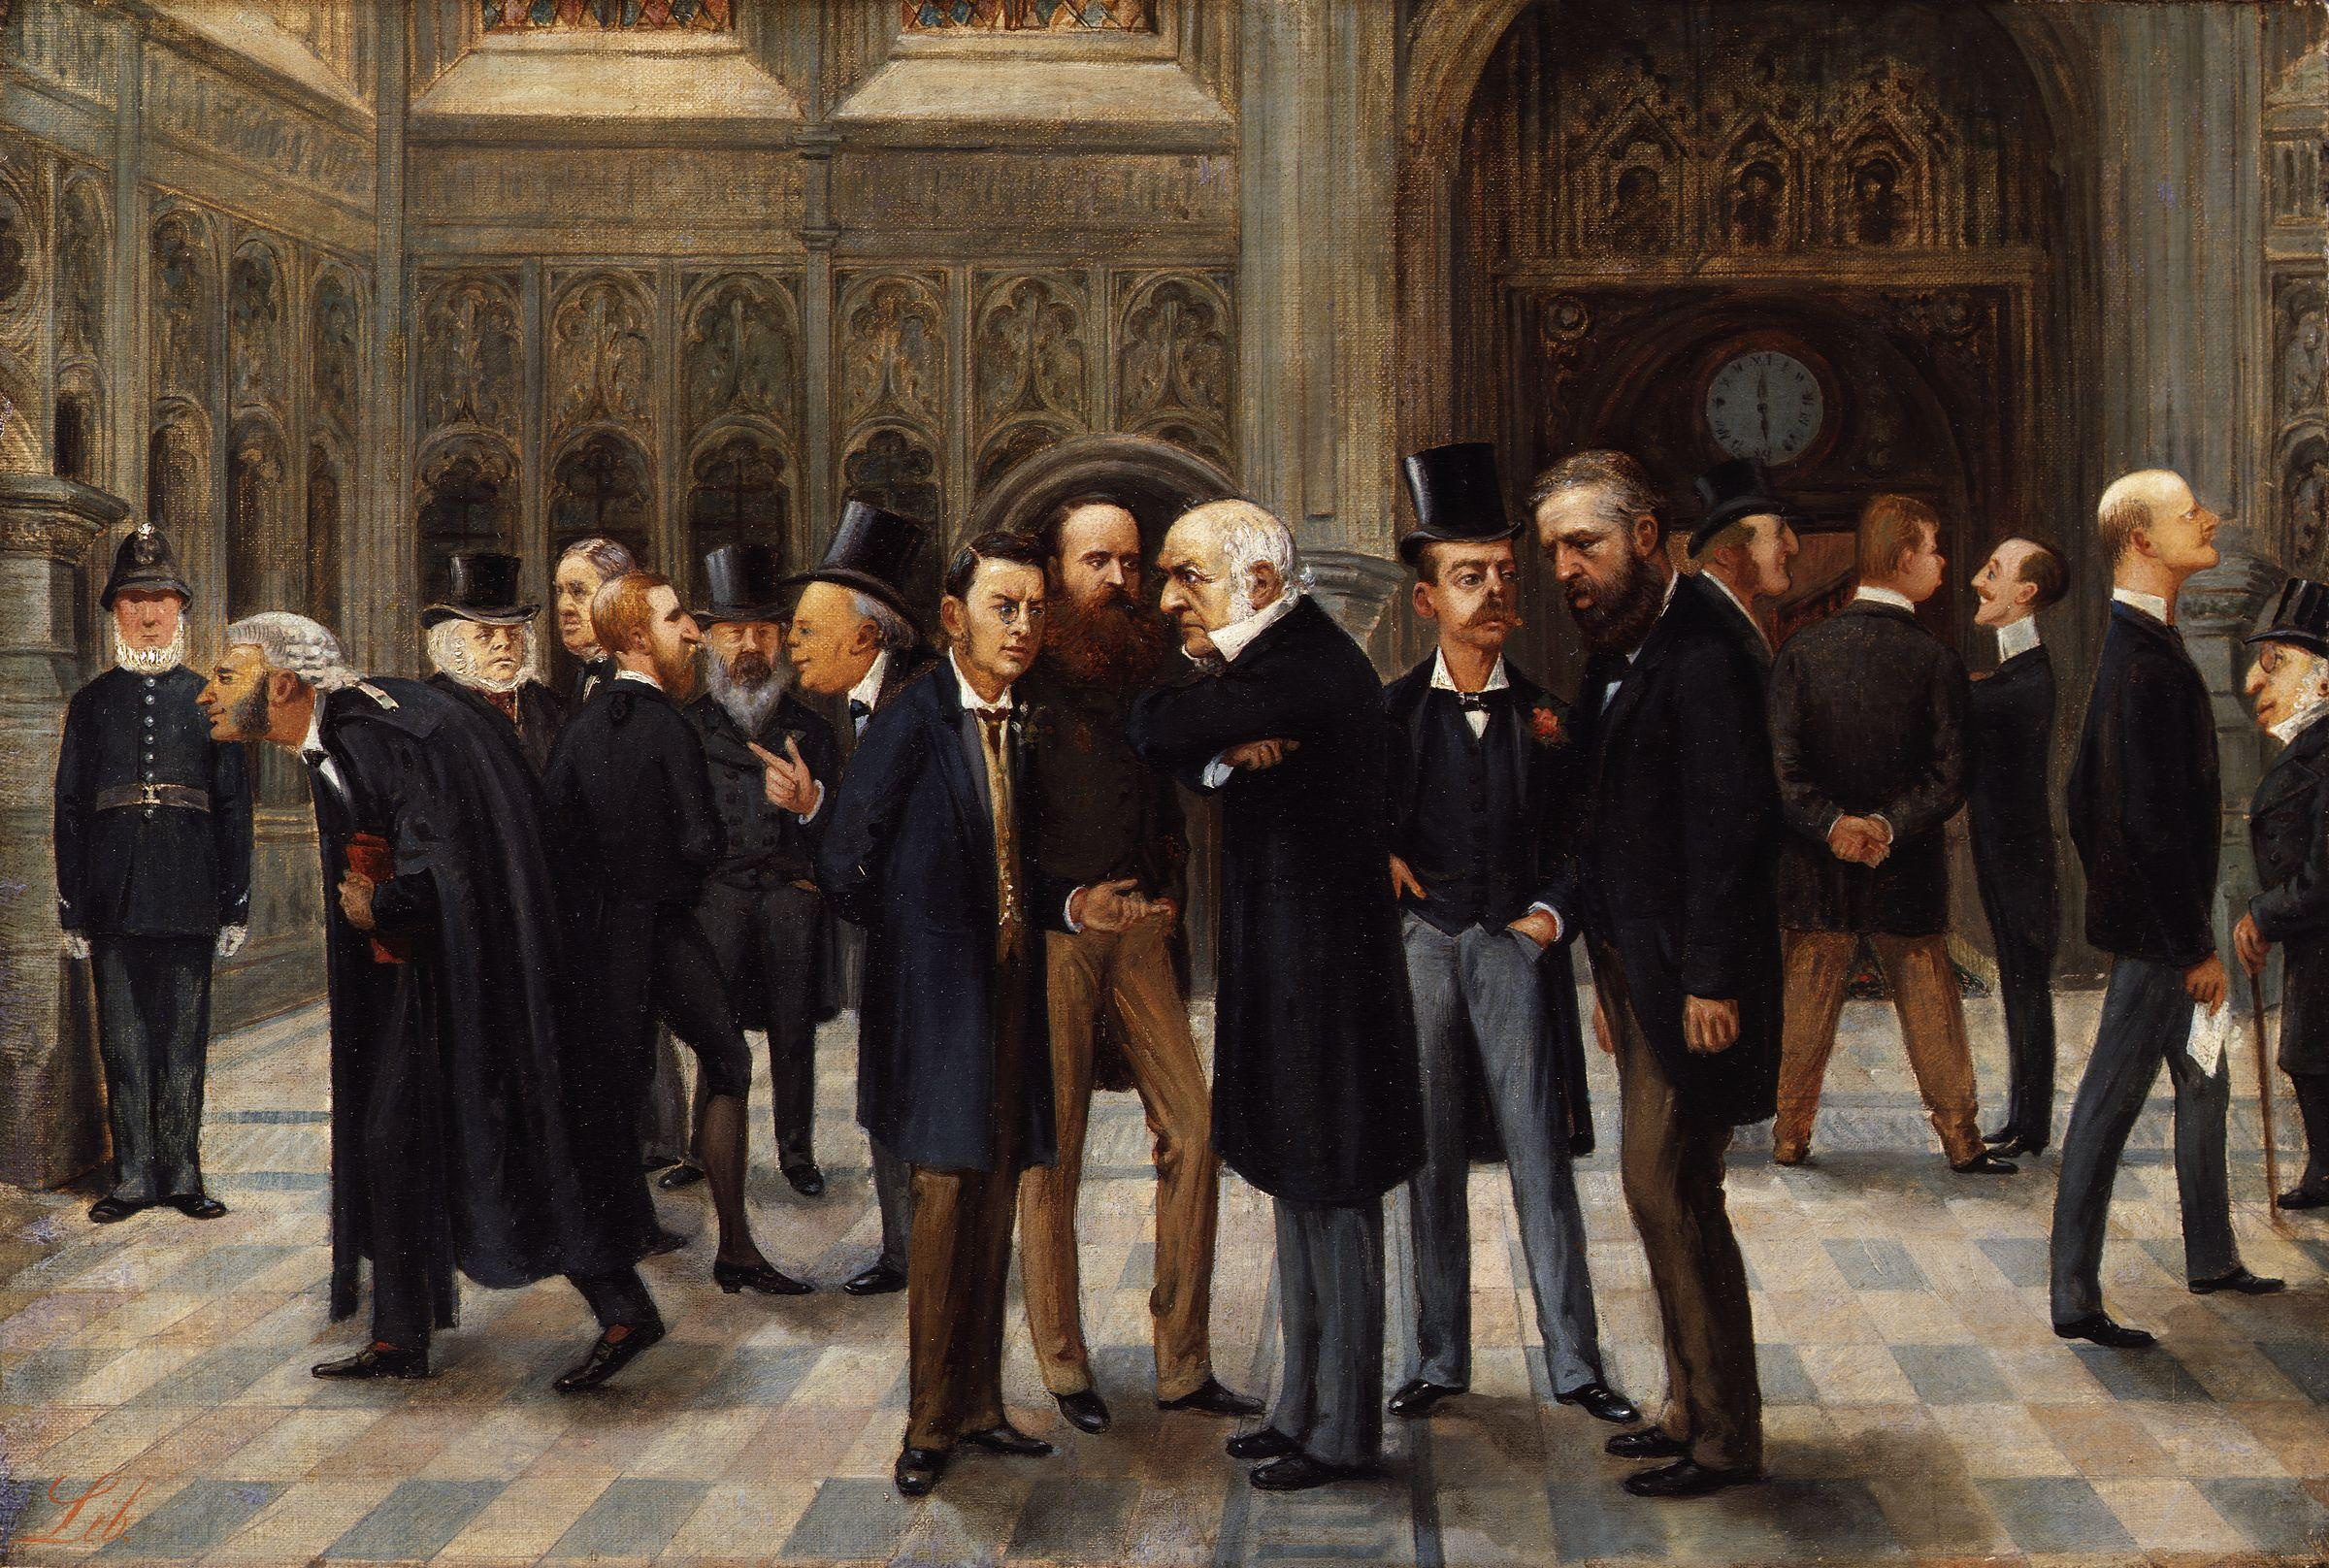 The Lobby of the House of Commons, 1886 by Liborio Prosperi